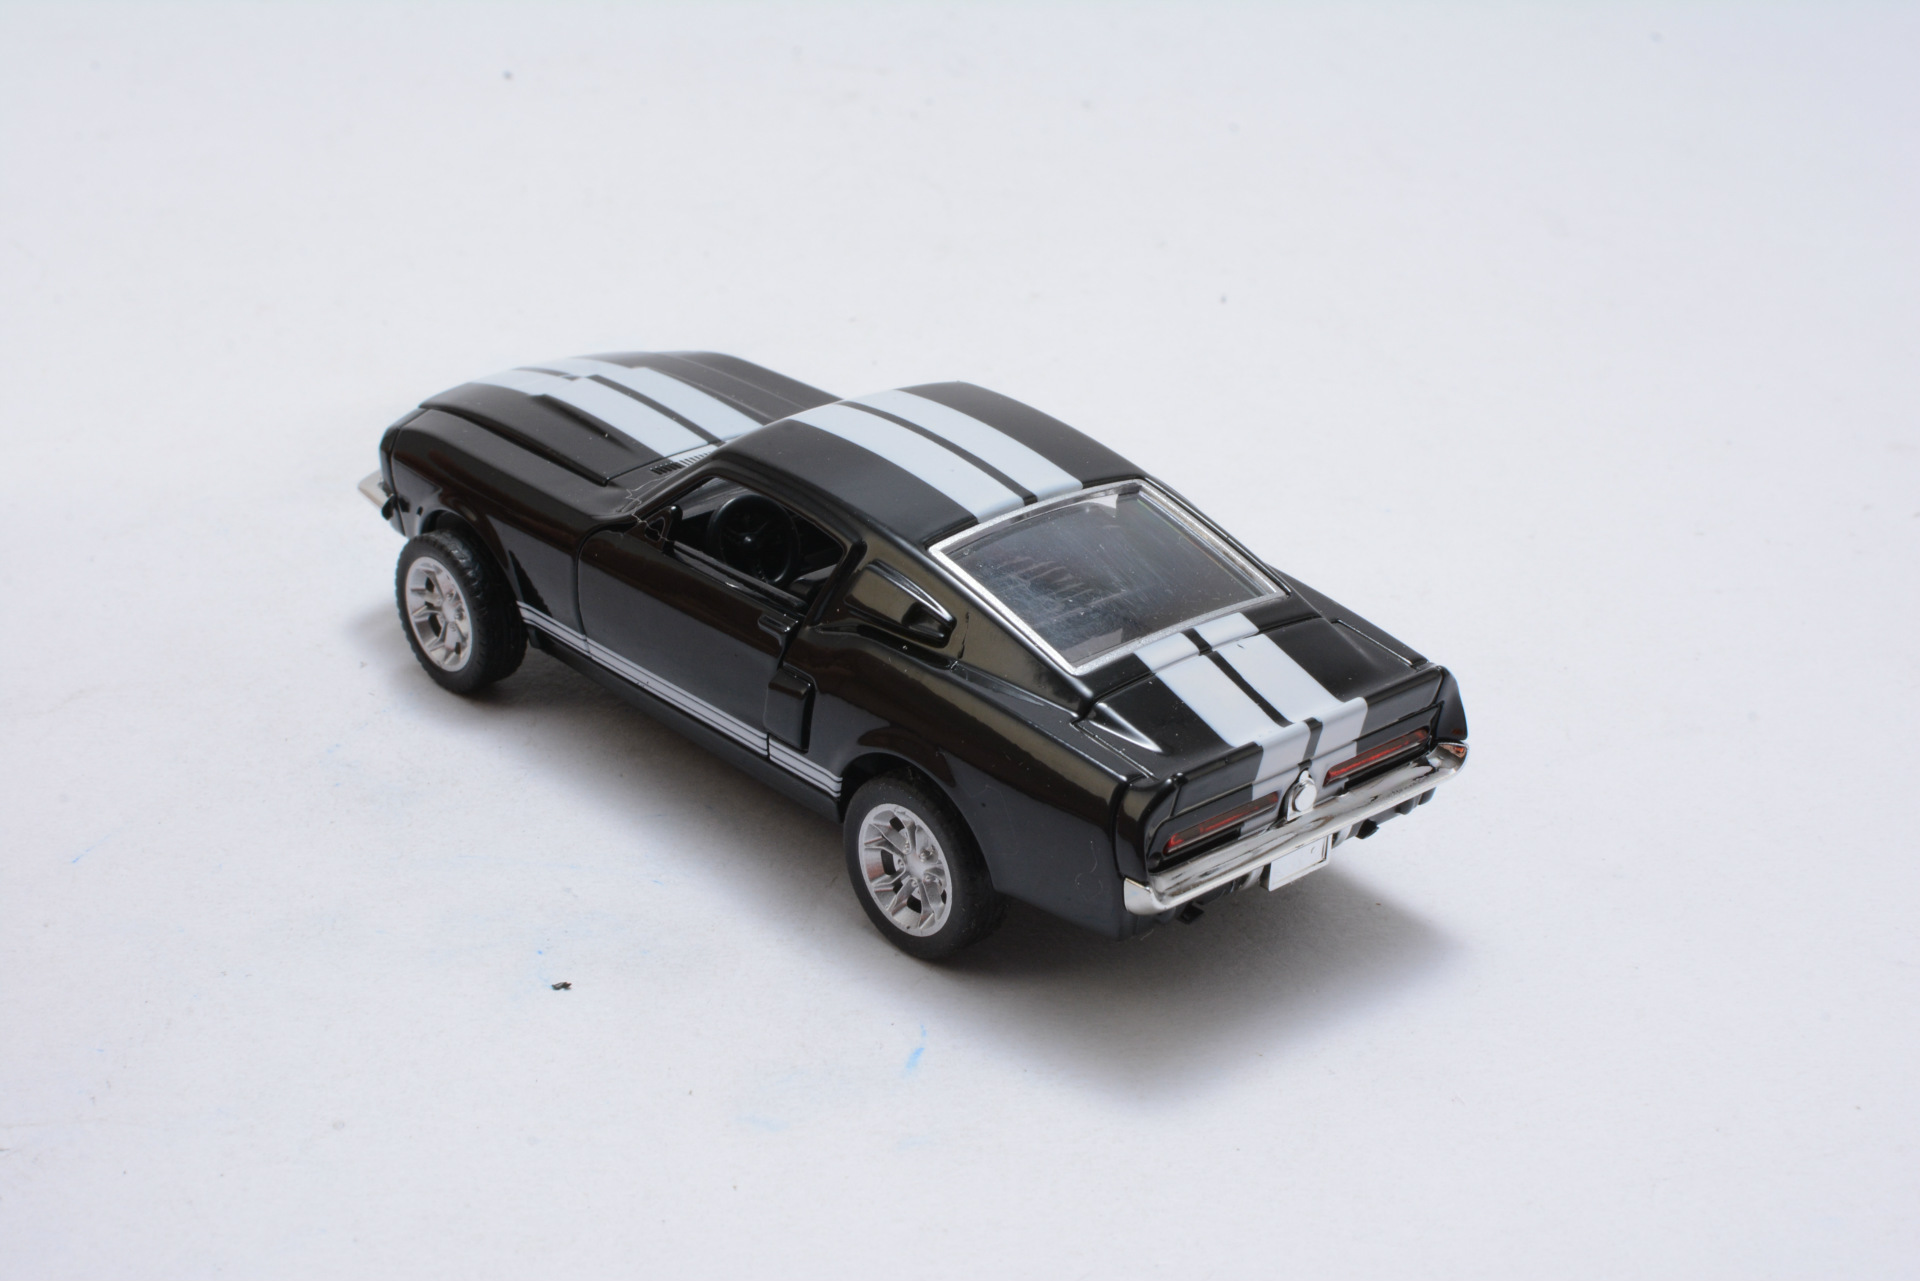 Ford Mustang GT 1967 GT500 Toy Car 13x5x35cm 15